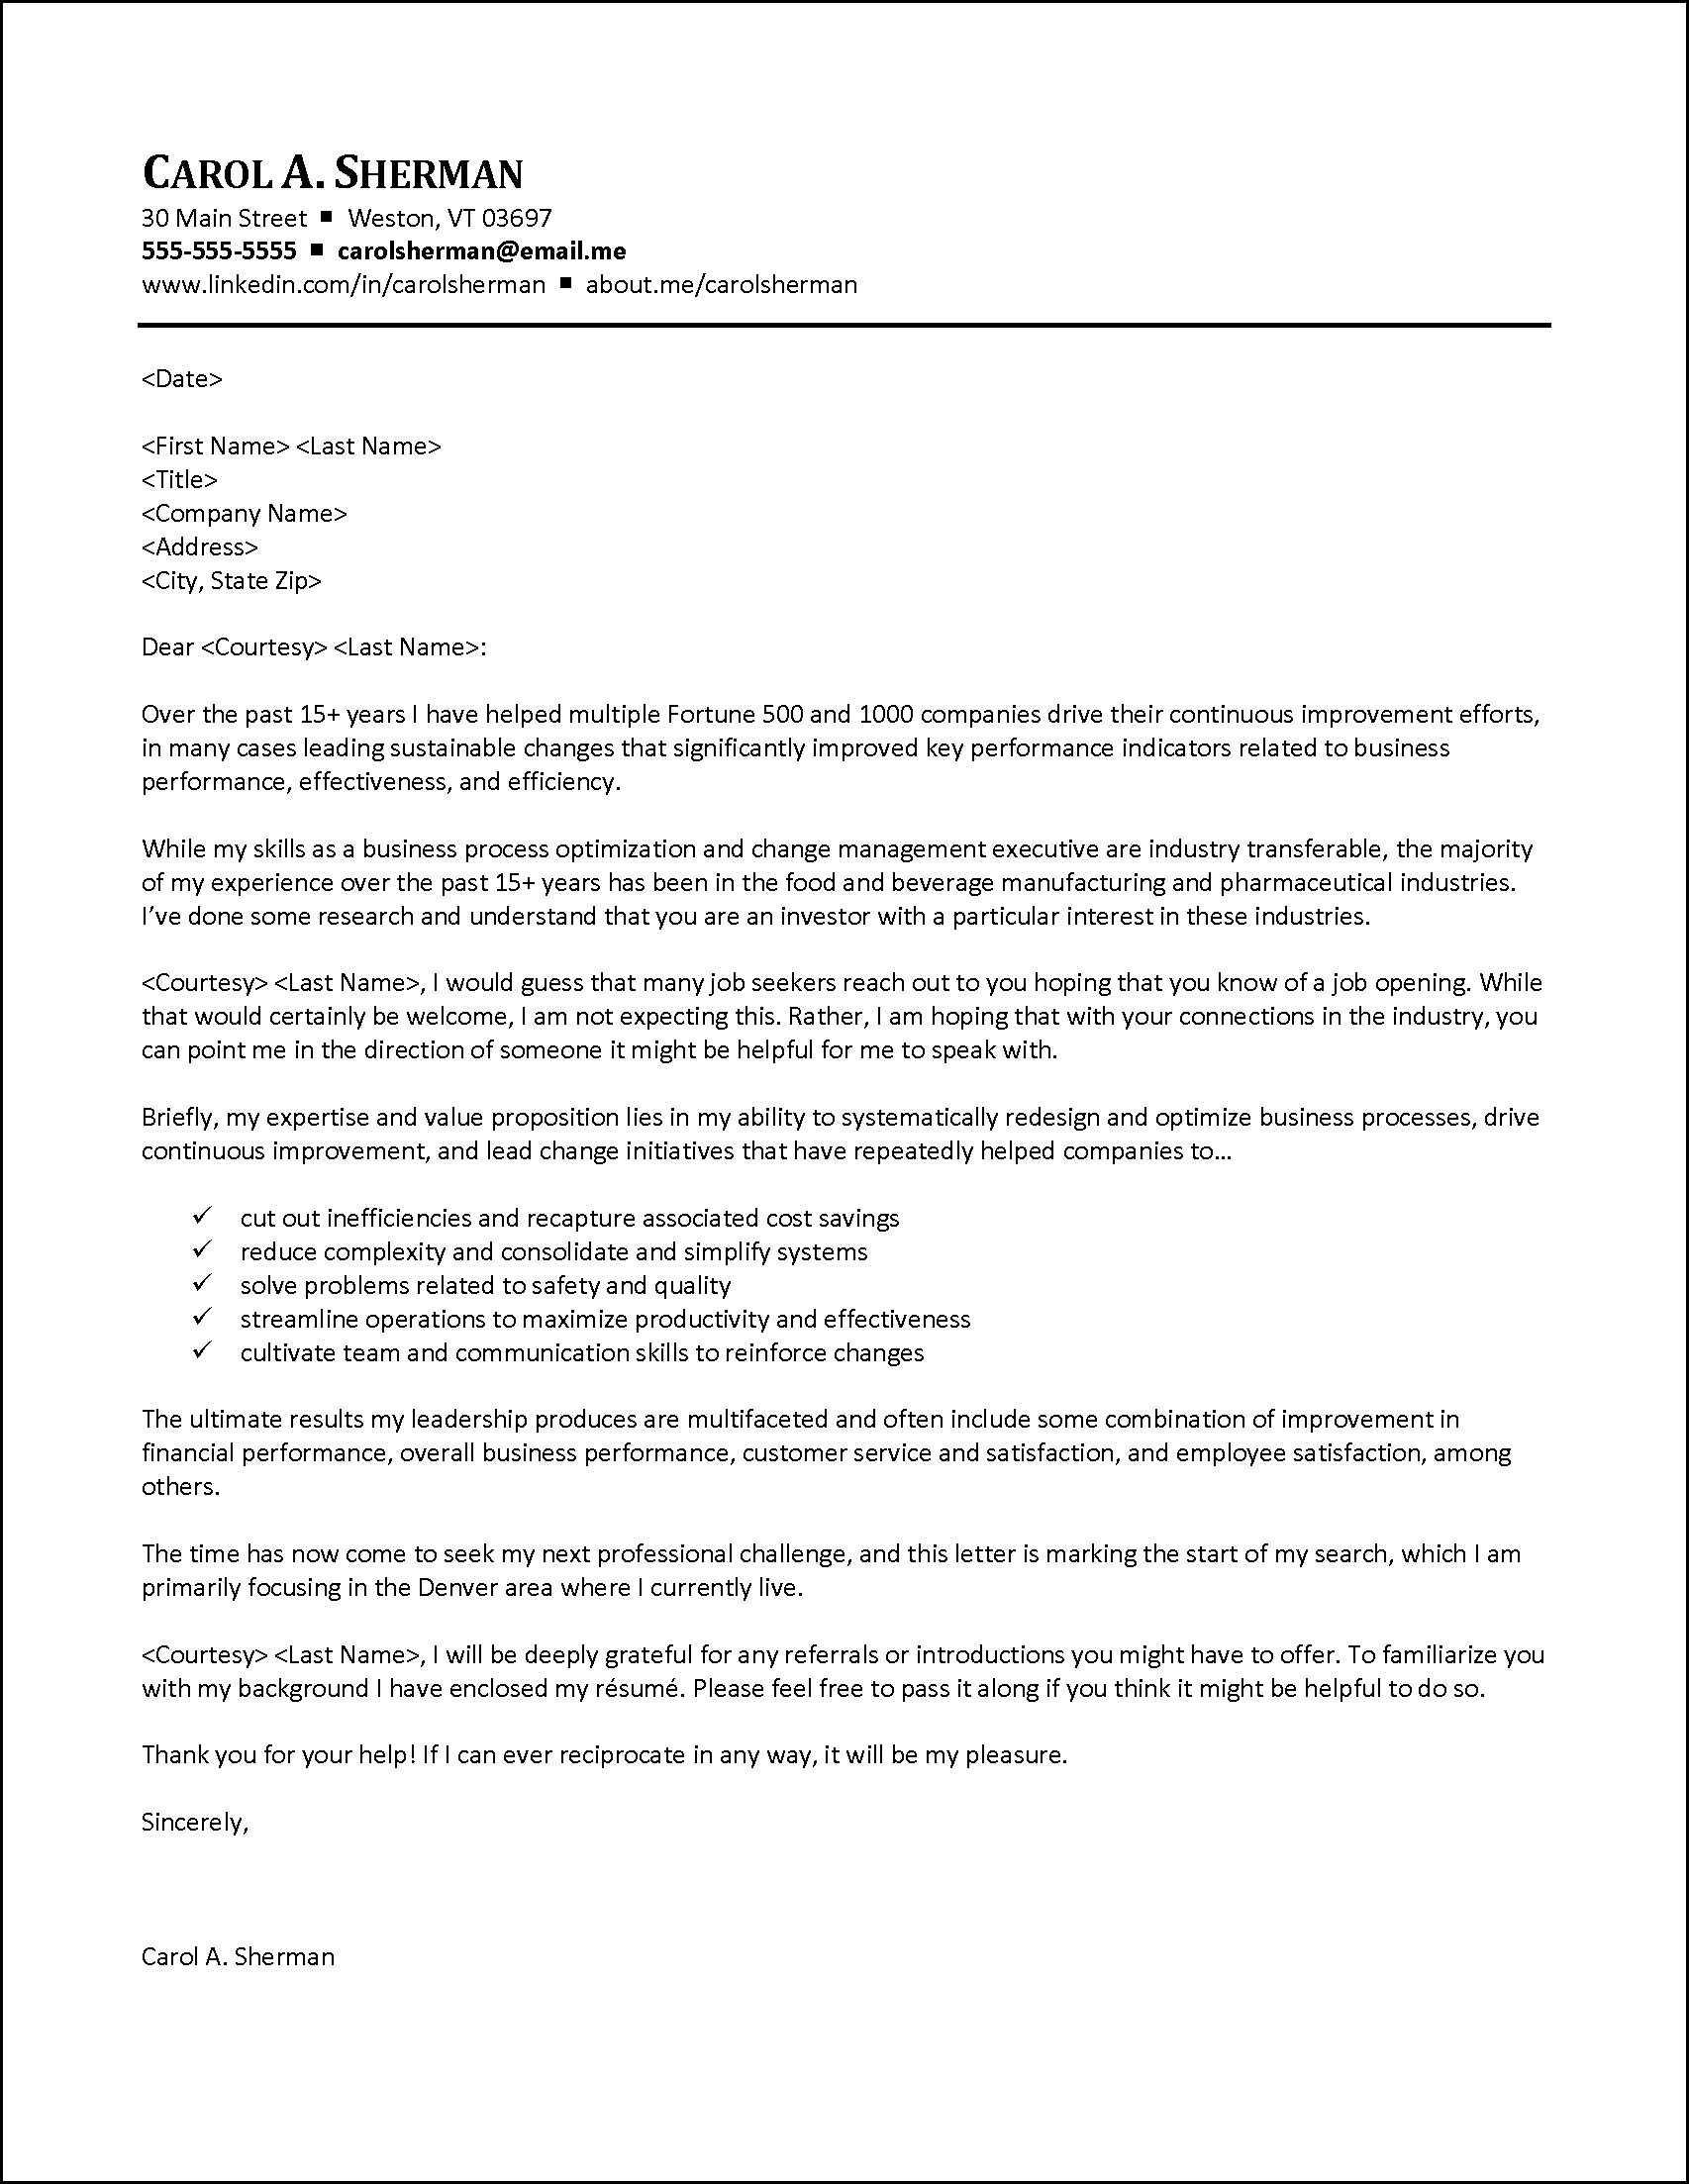 Example Cover Letter - Seeking Referrals